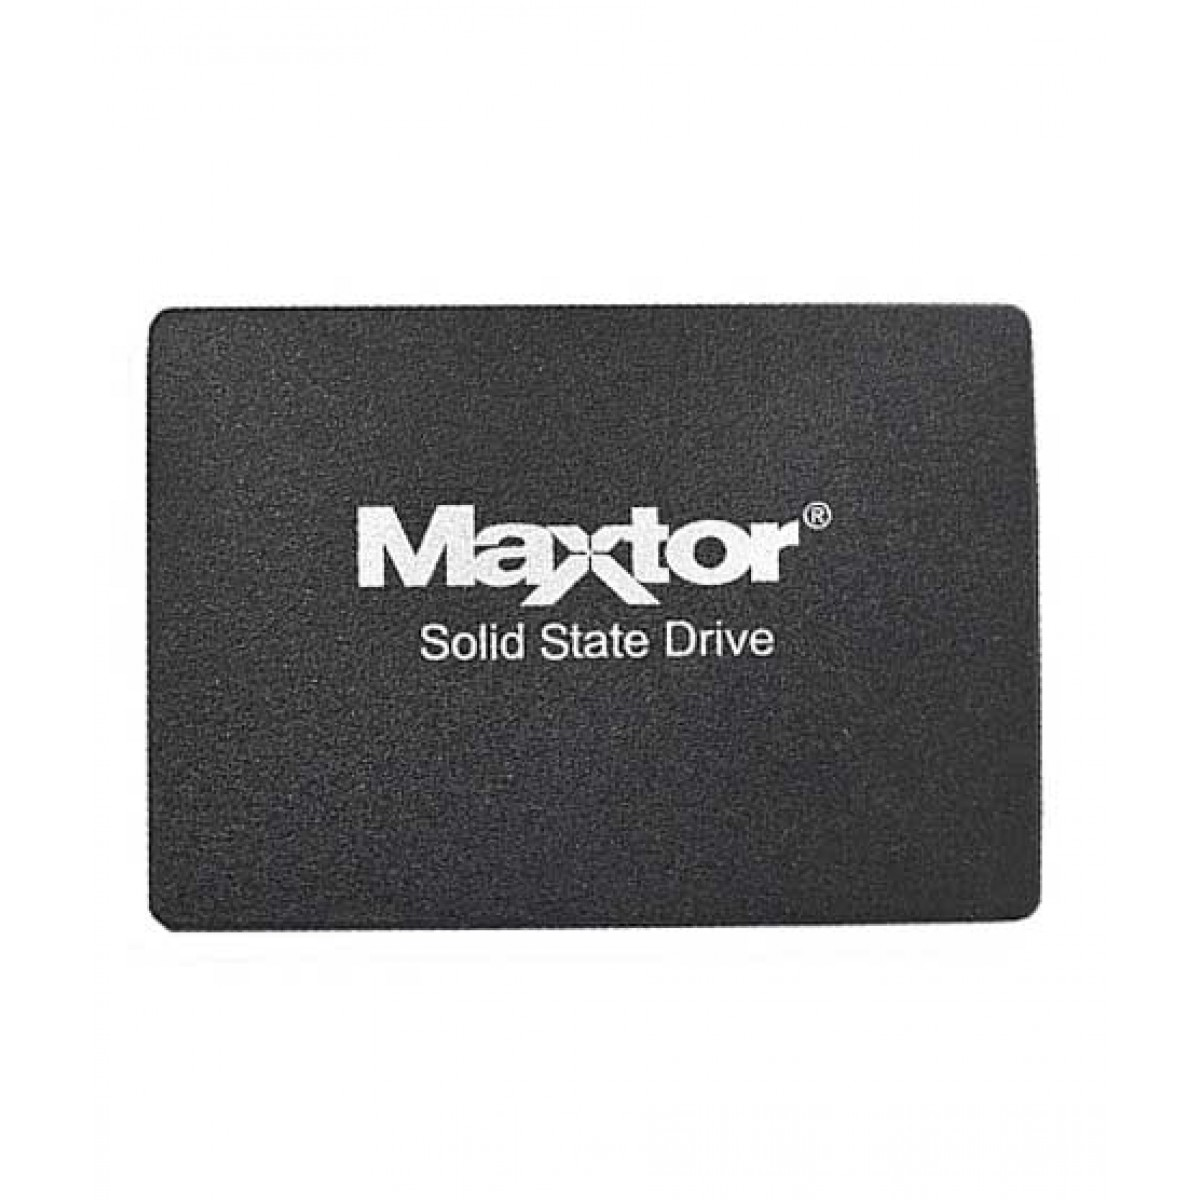 Seagate Maxtor Z1 480GB Solid State Drive